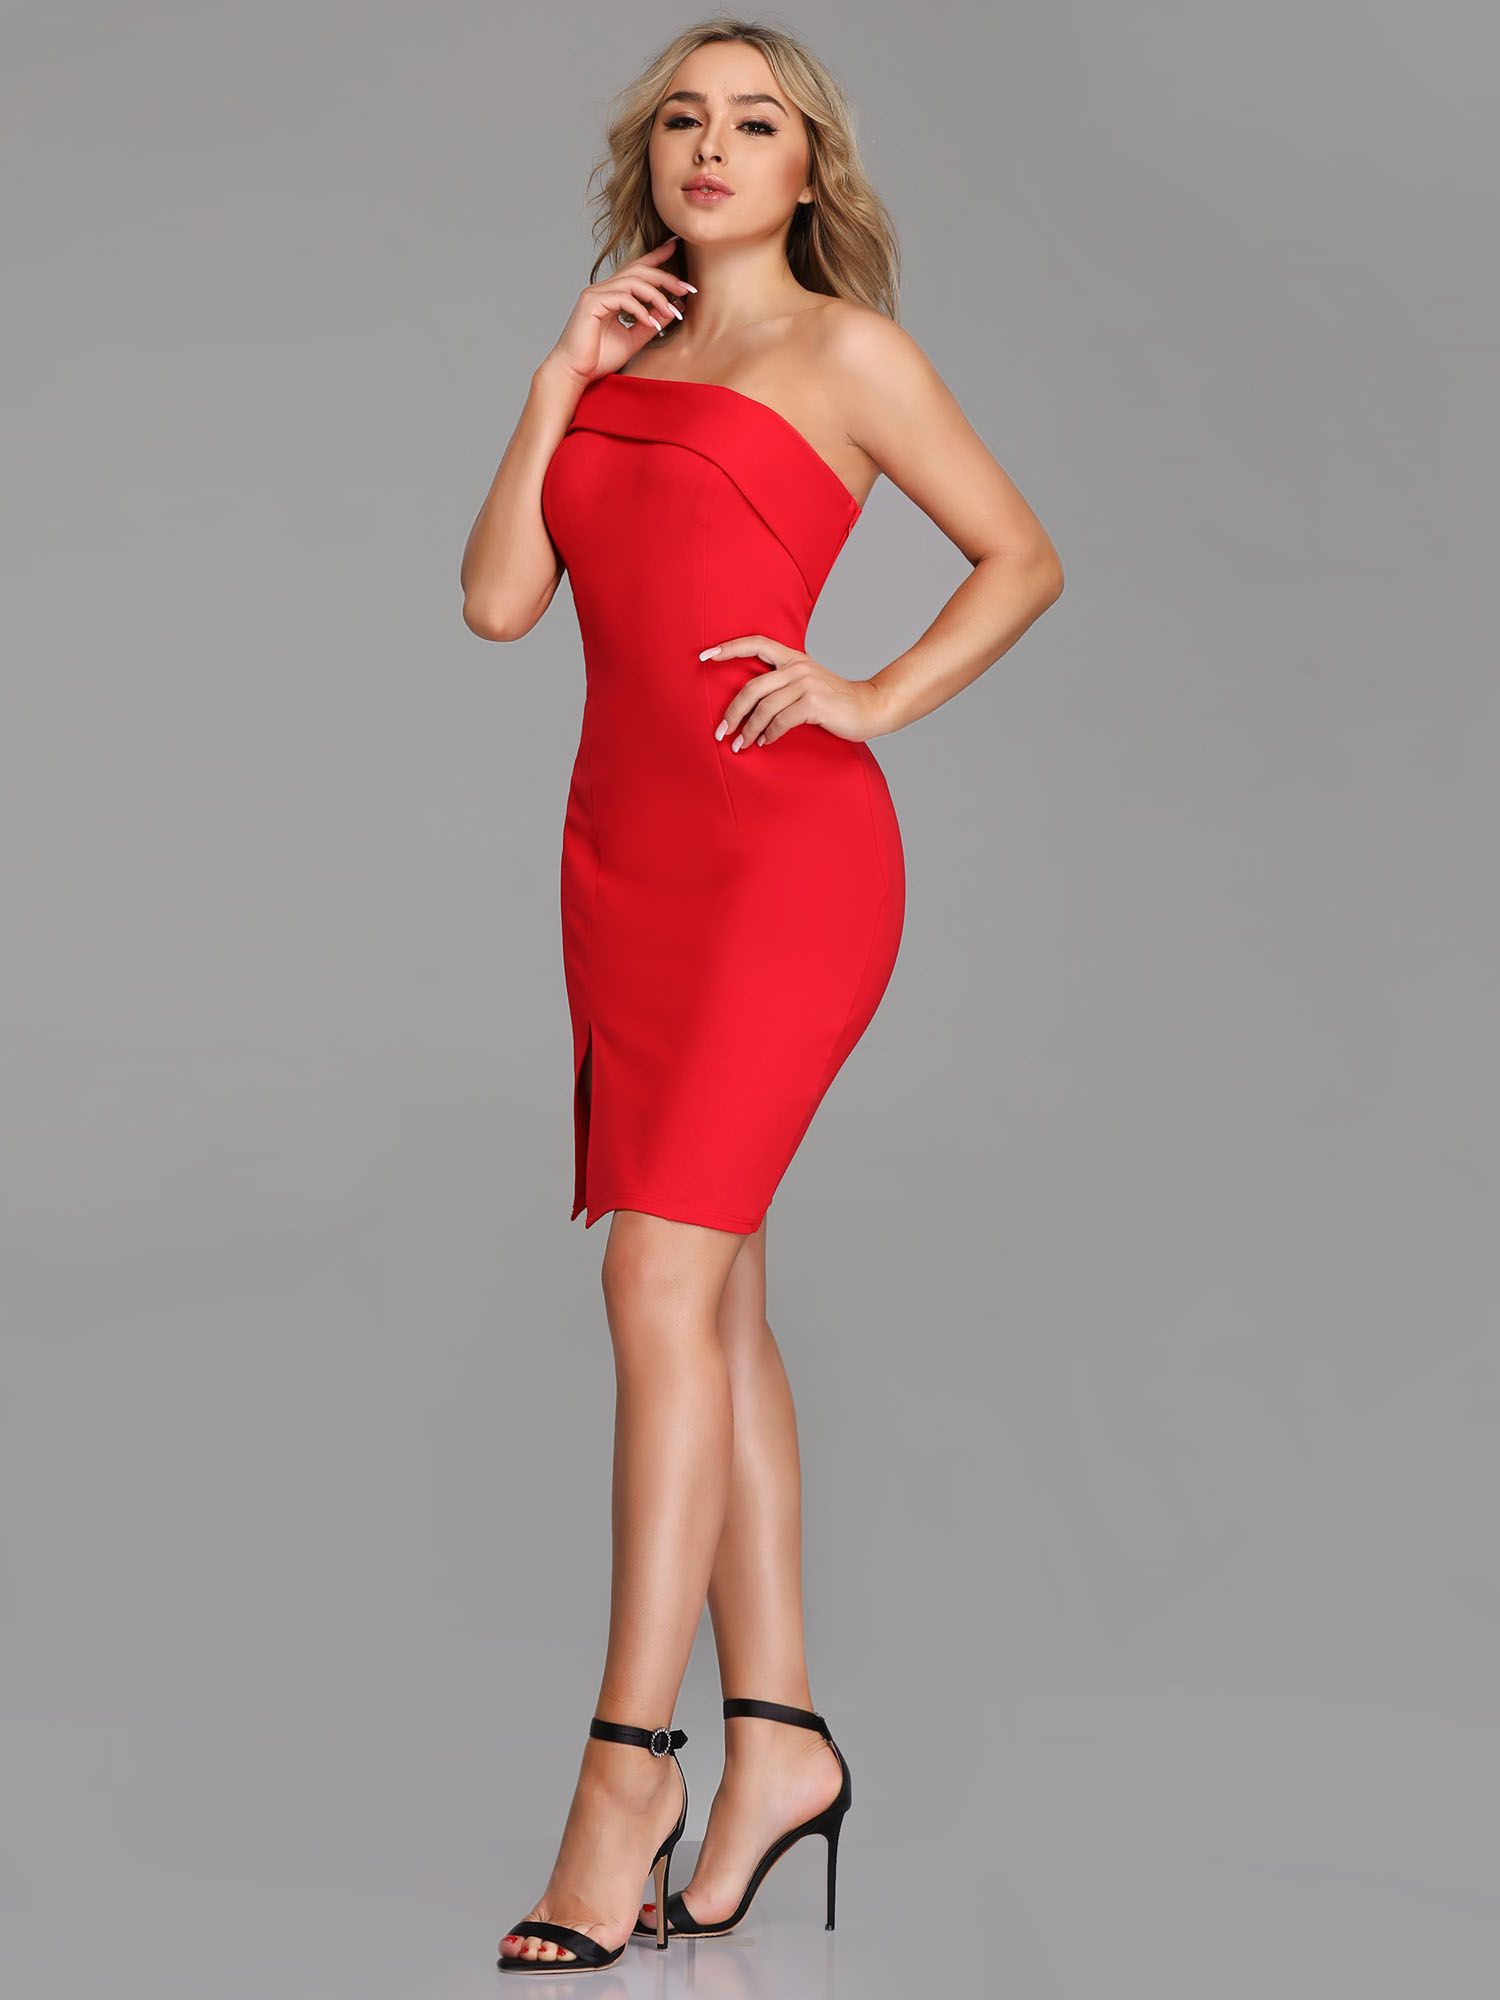 Ever Pretty Ever Pretty Women S One Shoulder Bodycon Red Evening Party Cocktail Mini Dresses For Women 05852 Us 4 Walmart Com Short Cocktail Dress Red Dress Short Mini Cocktail Dress [ 2000 x 1500 Pixel ]